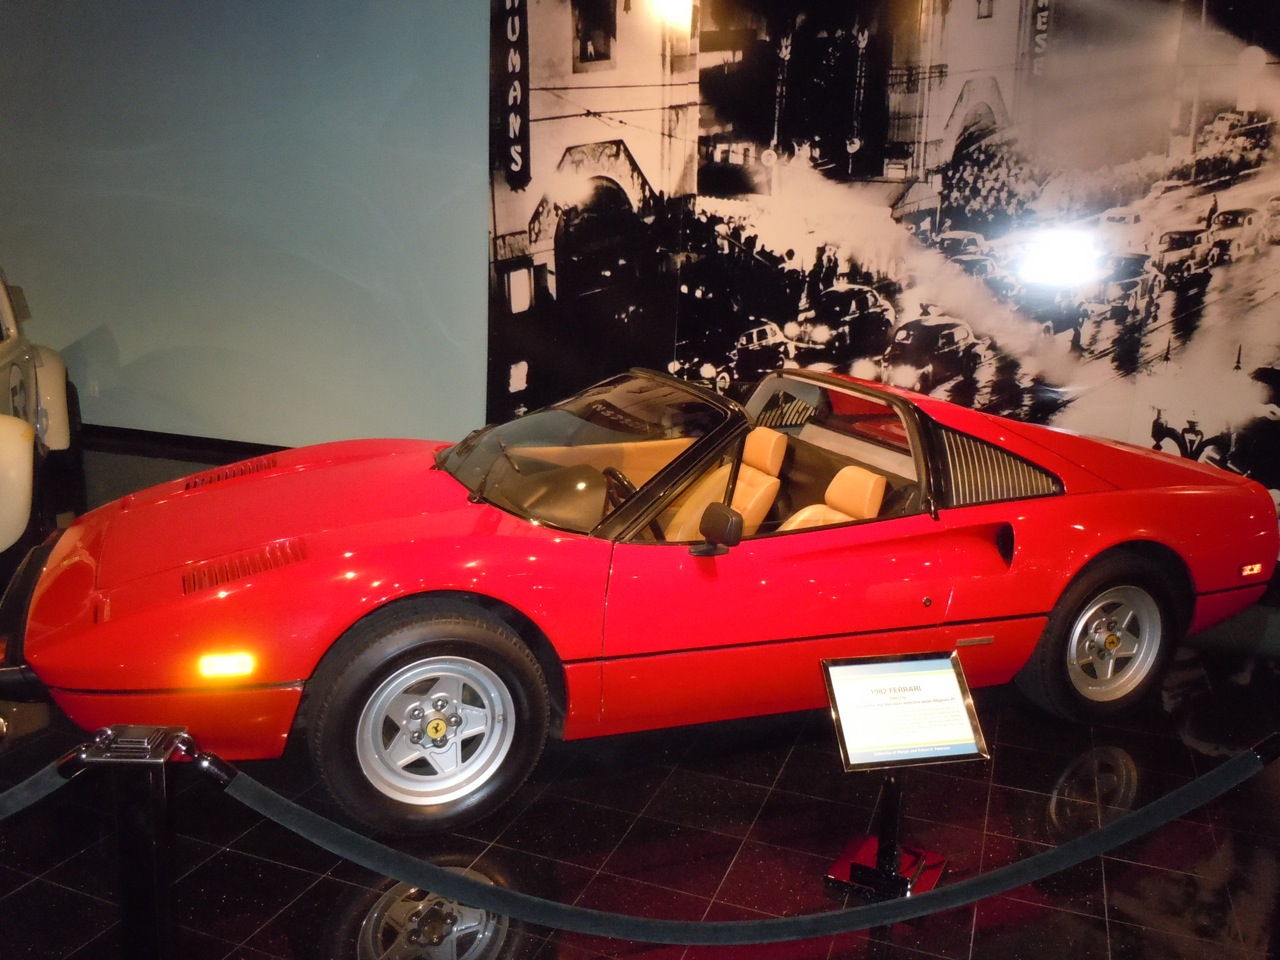 Hollywood Movie Costumes and Props: 1982 Ferrari used in TV's Magnum